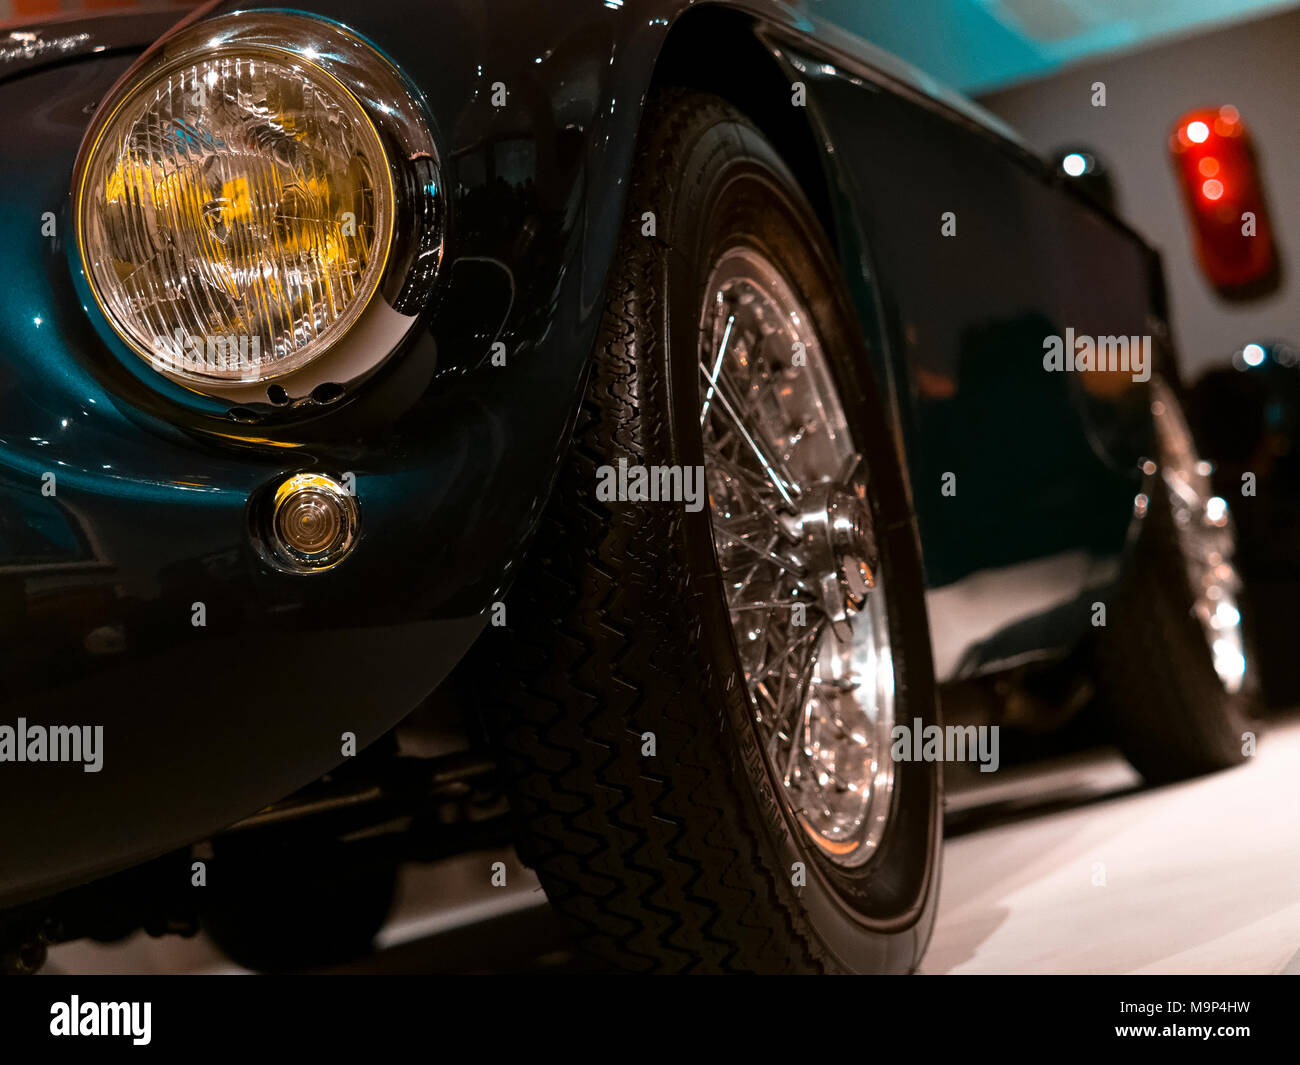 Detail of a Ferrari 166 M Barchetta from 1950, Ferrari is an Italian Sports Car manufacturer founded in Italy 1947. - Stock Image